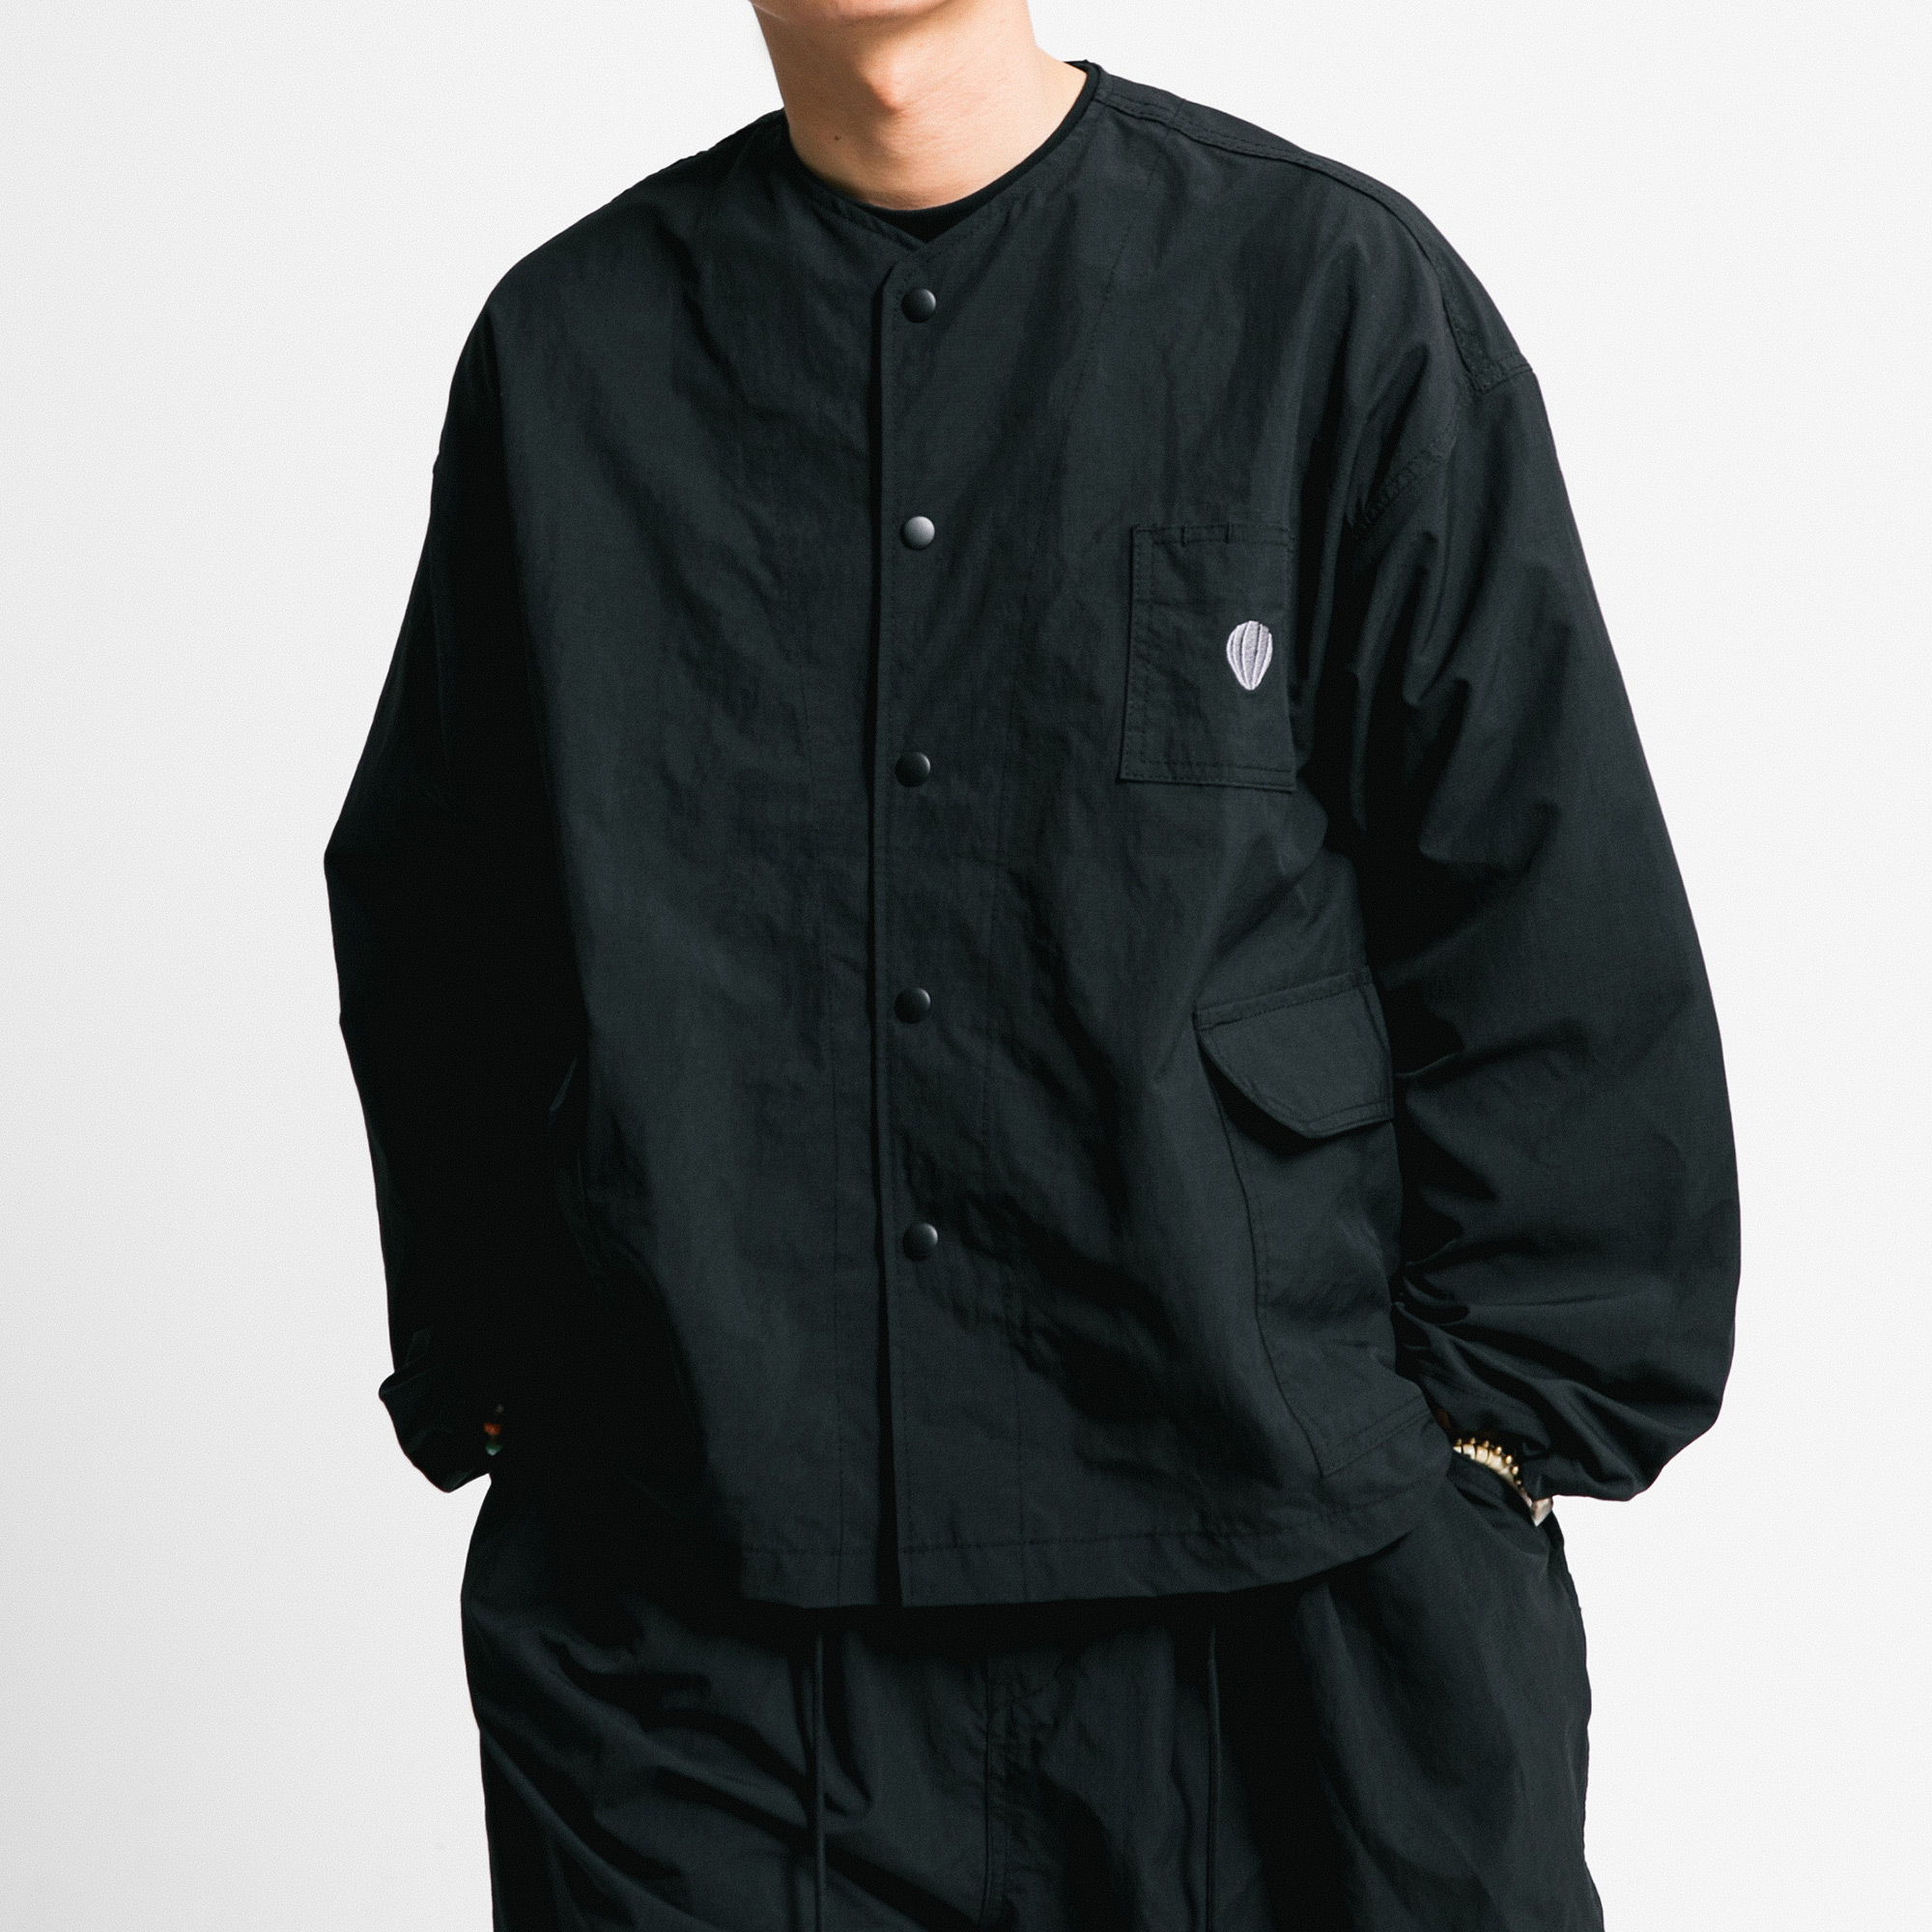 [AG] Rib Nylon Public Jacket - Black